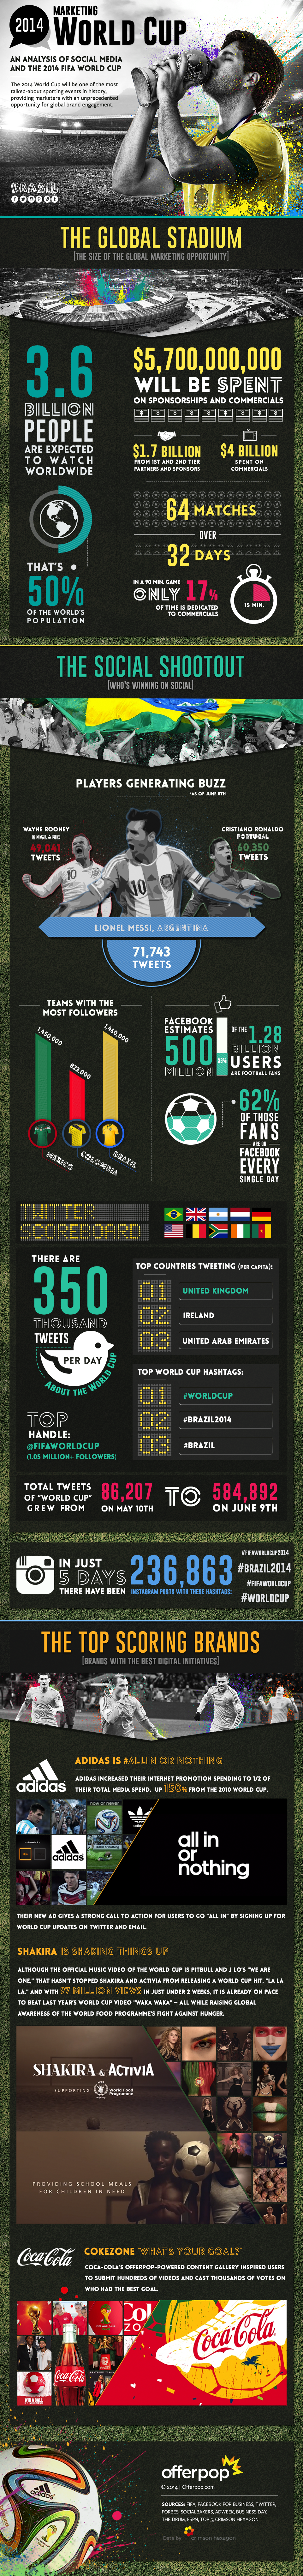 World-cup-infographic-Final1